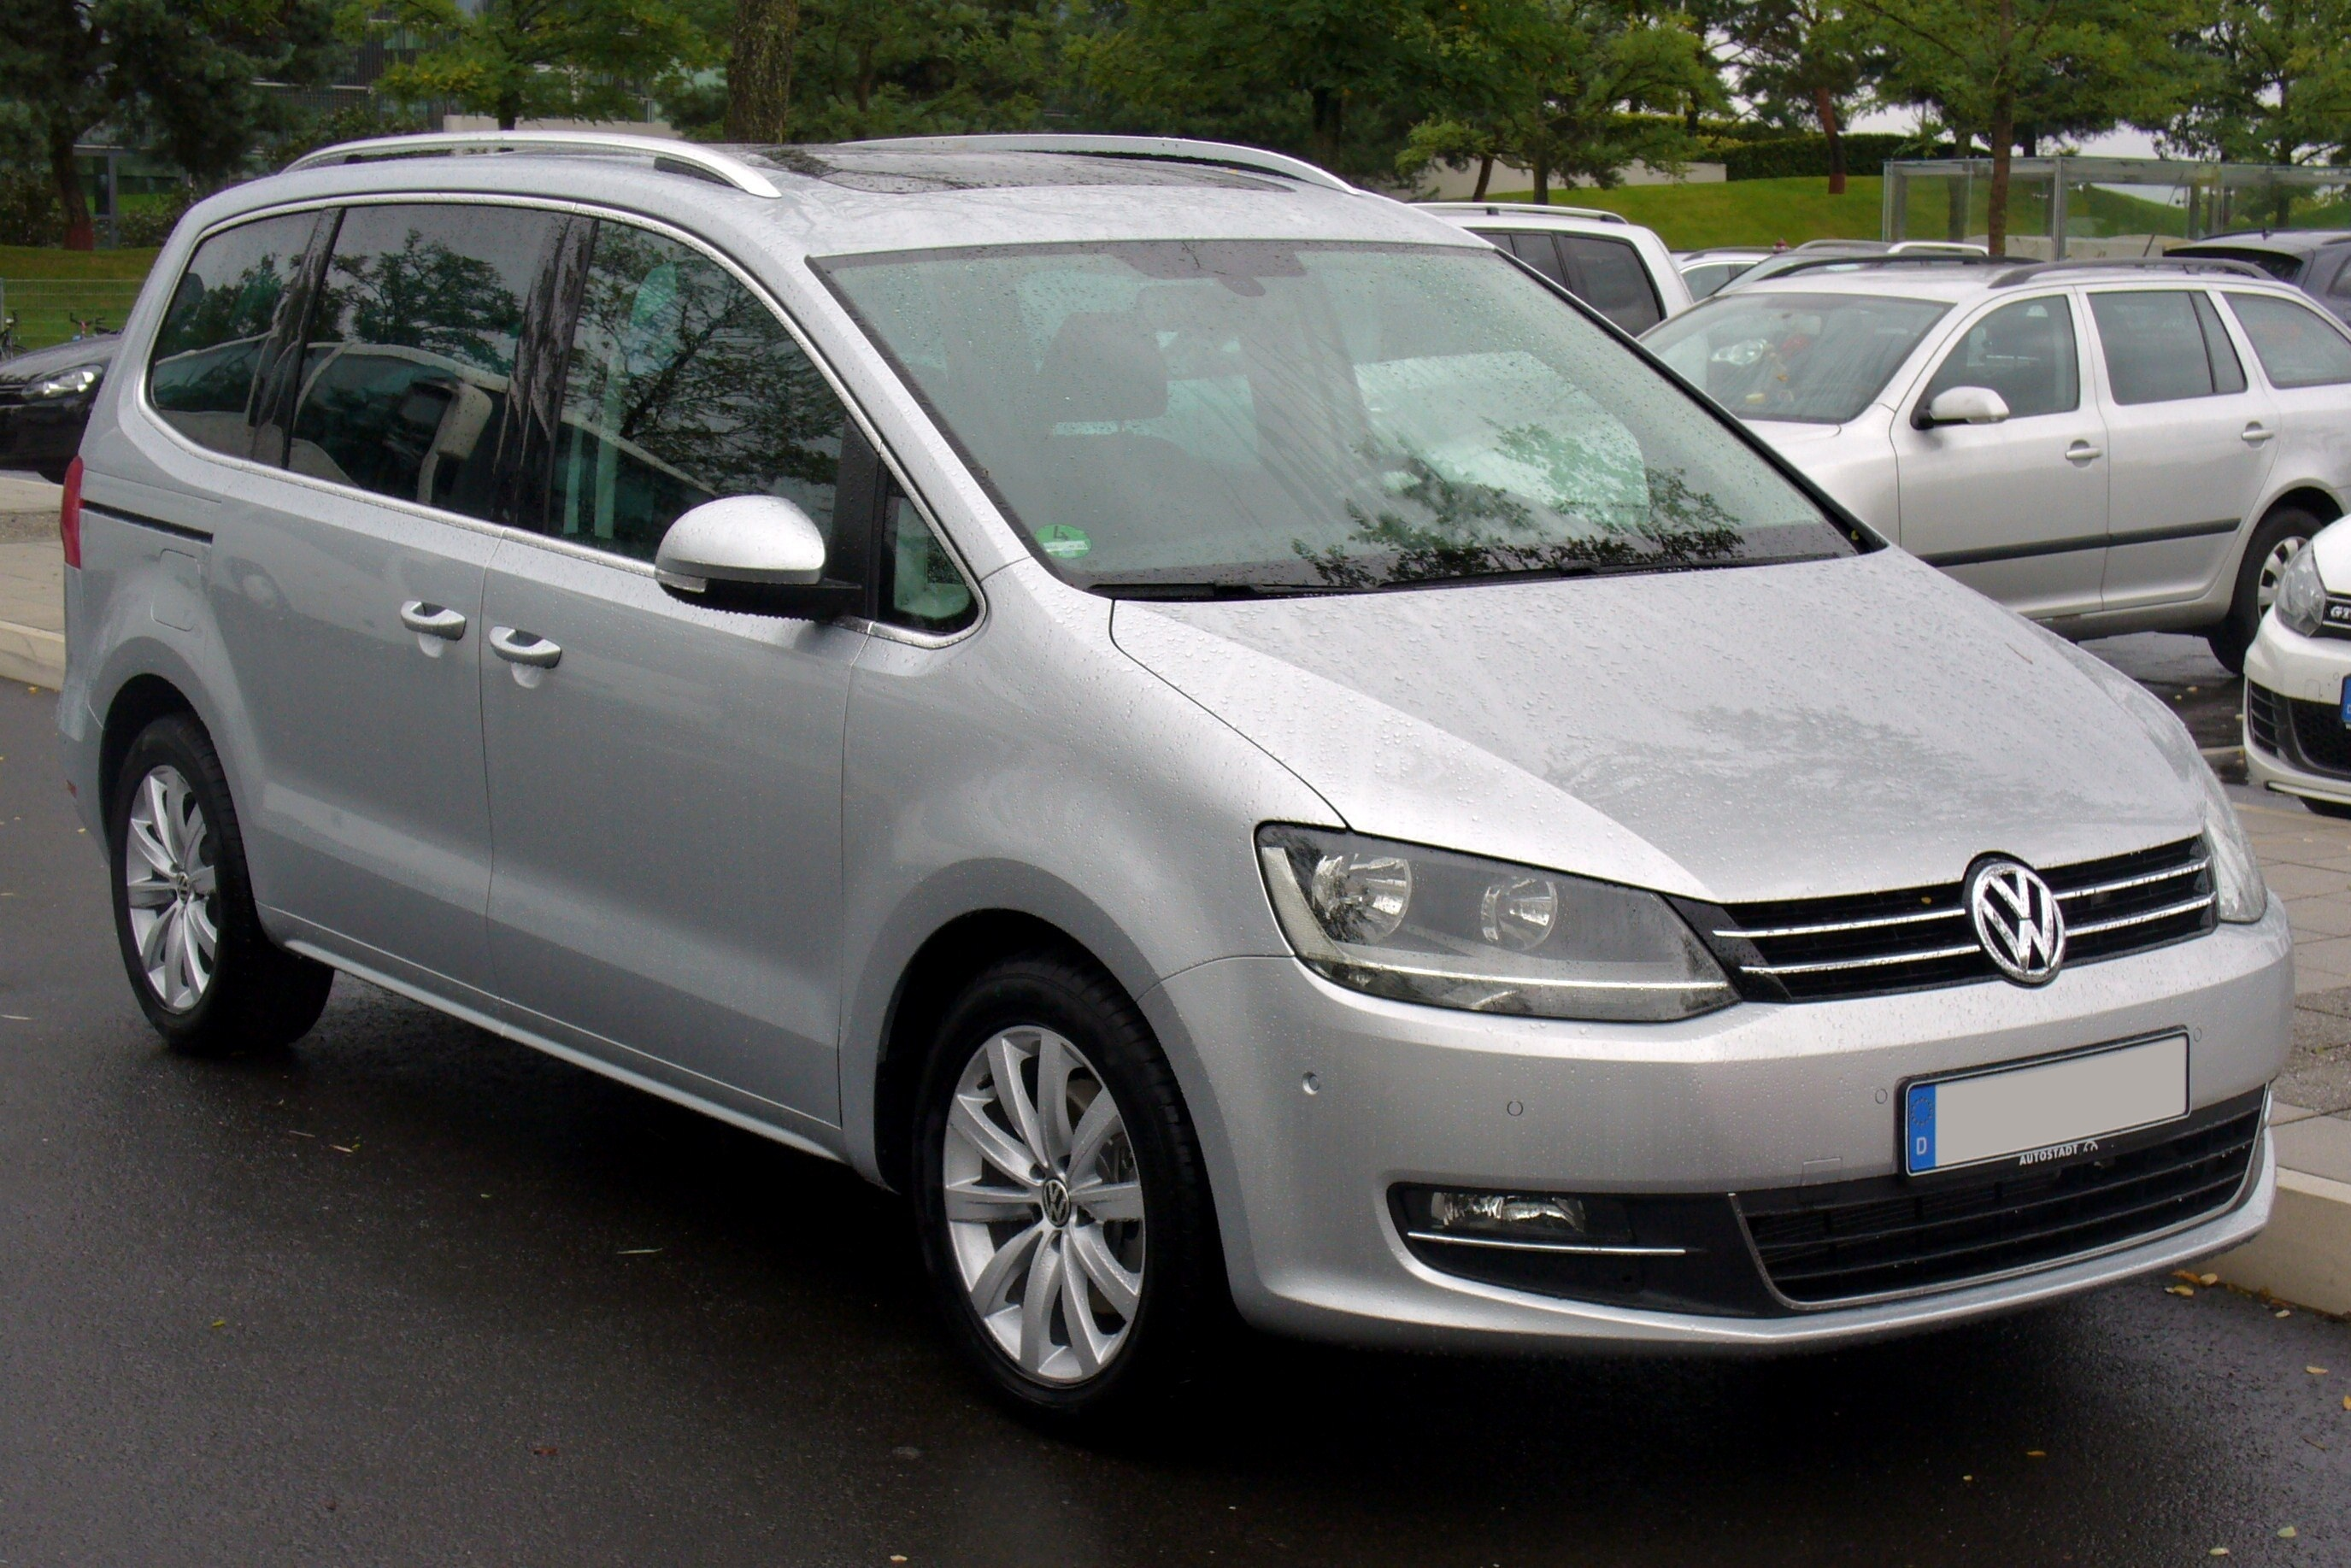 Volkswagen sharan 2004 photo - 2